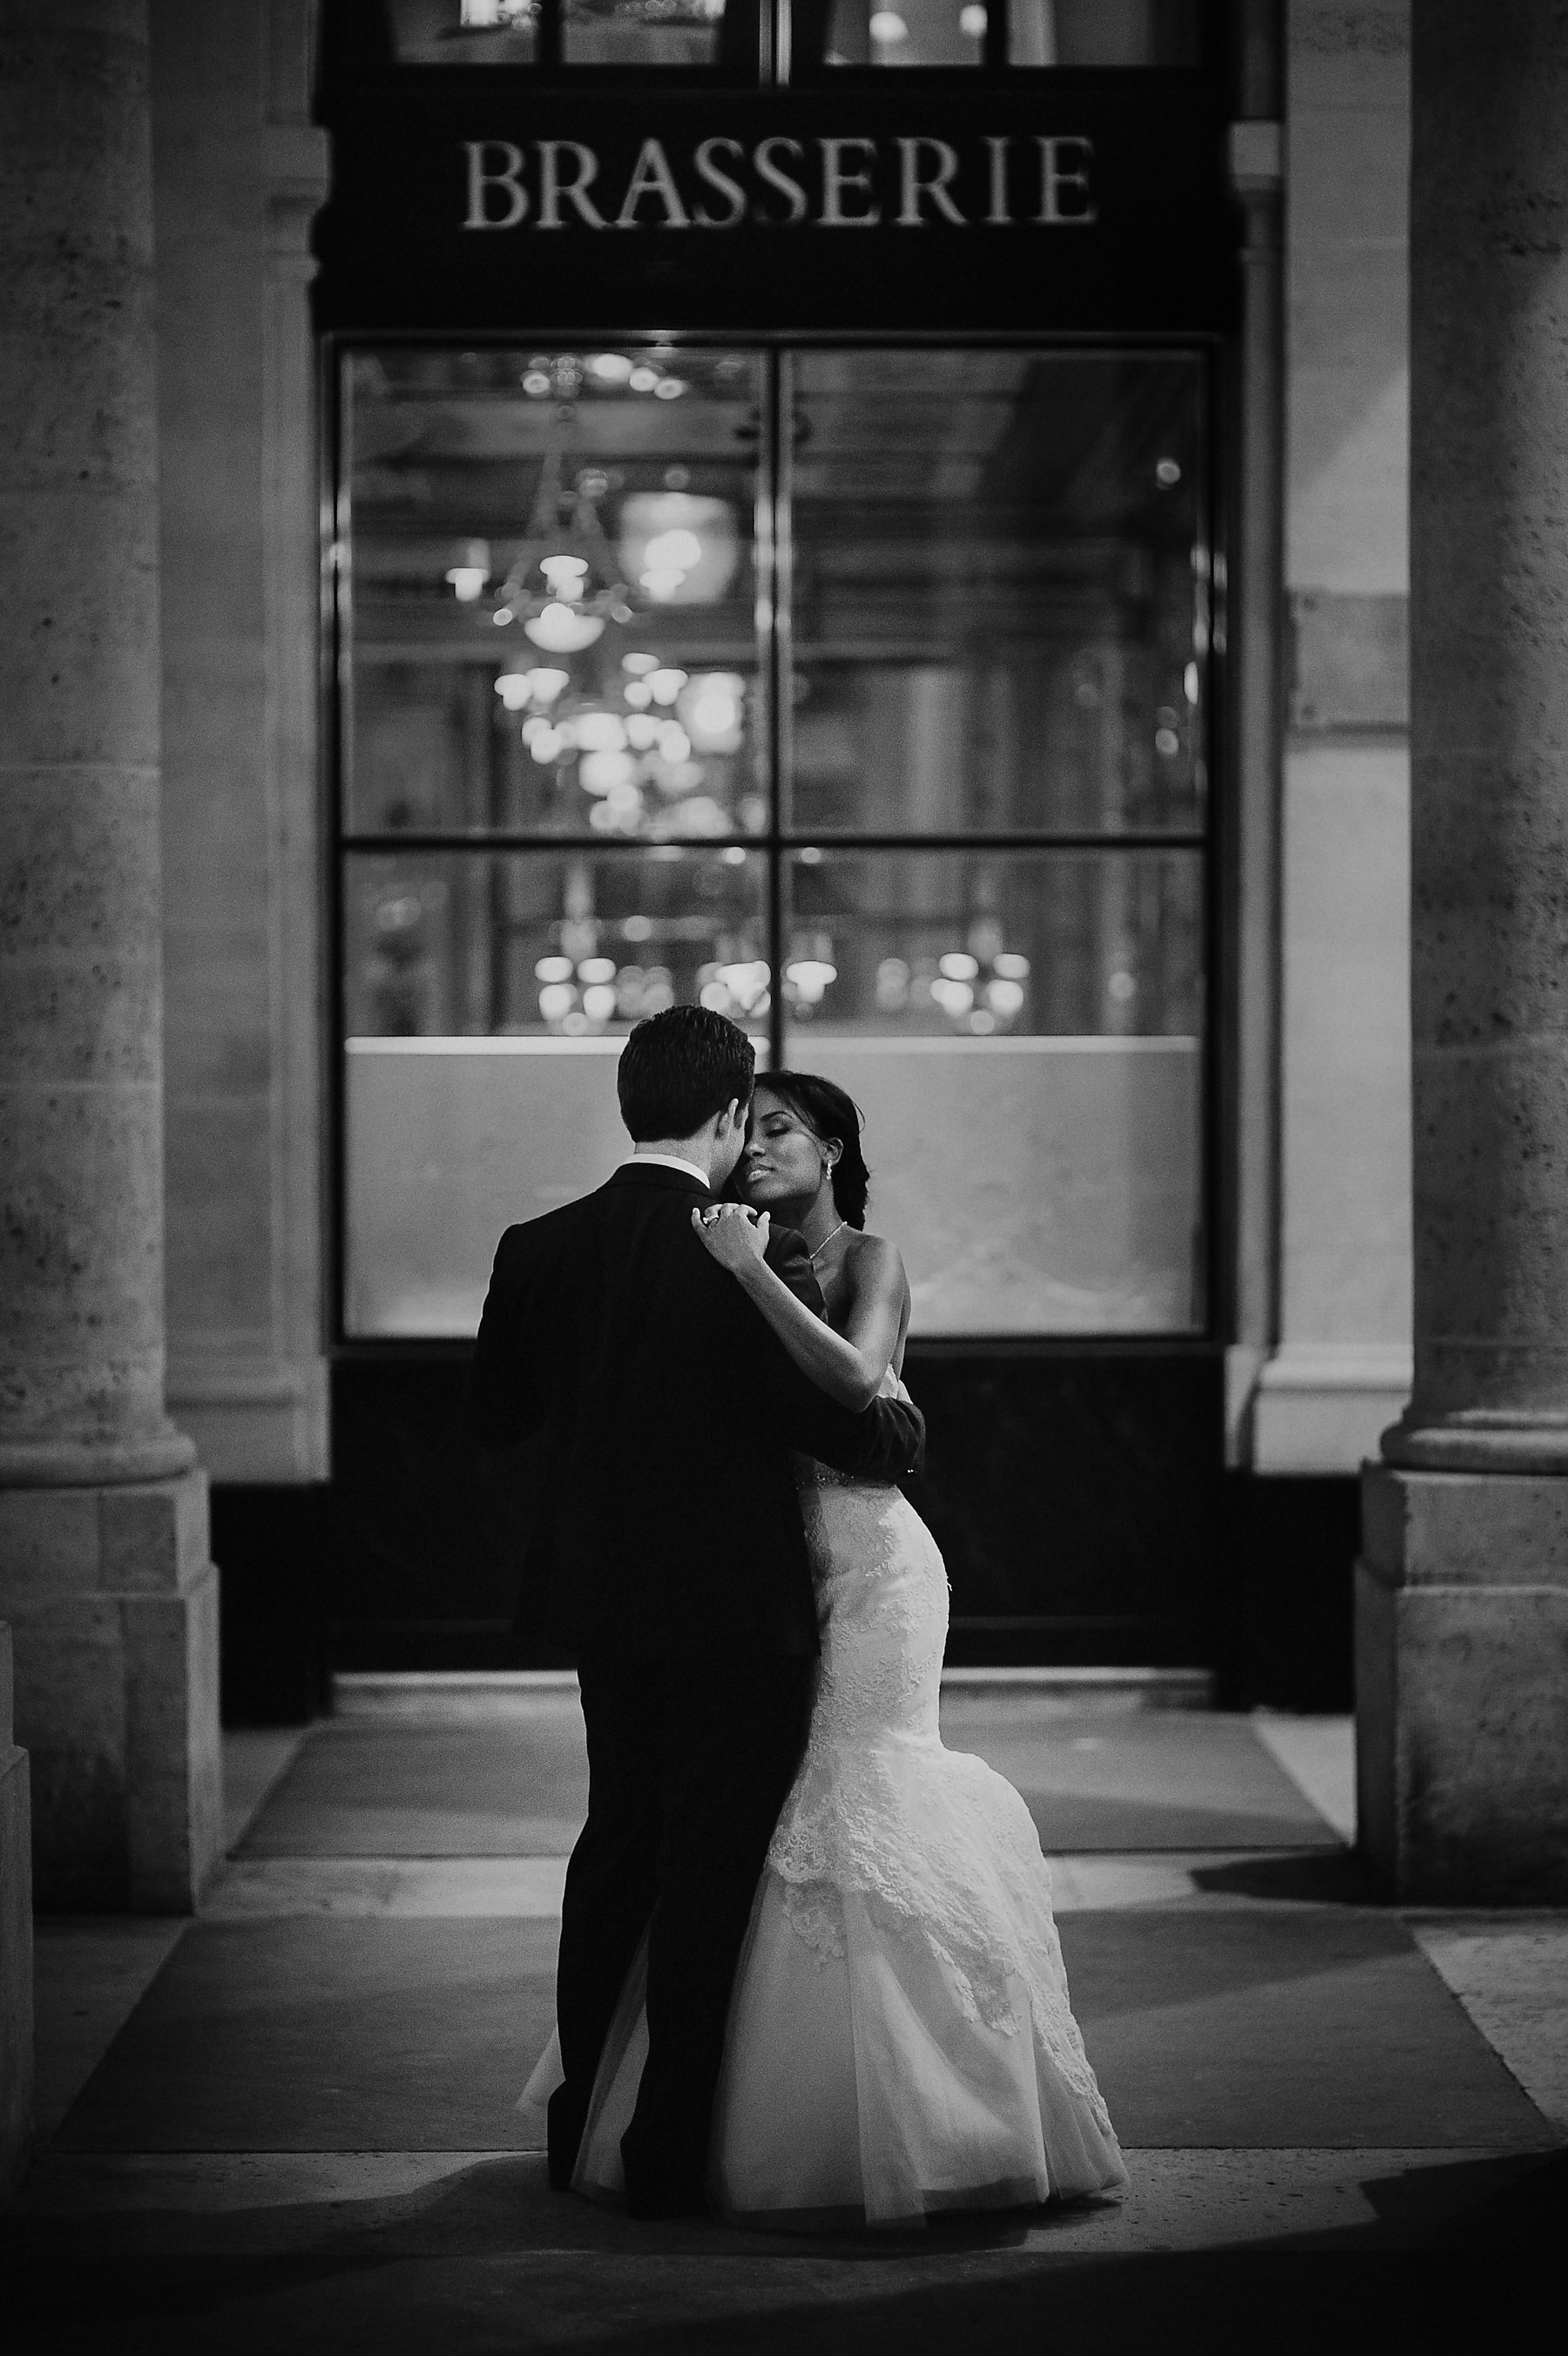 creative wedding photographer paris